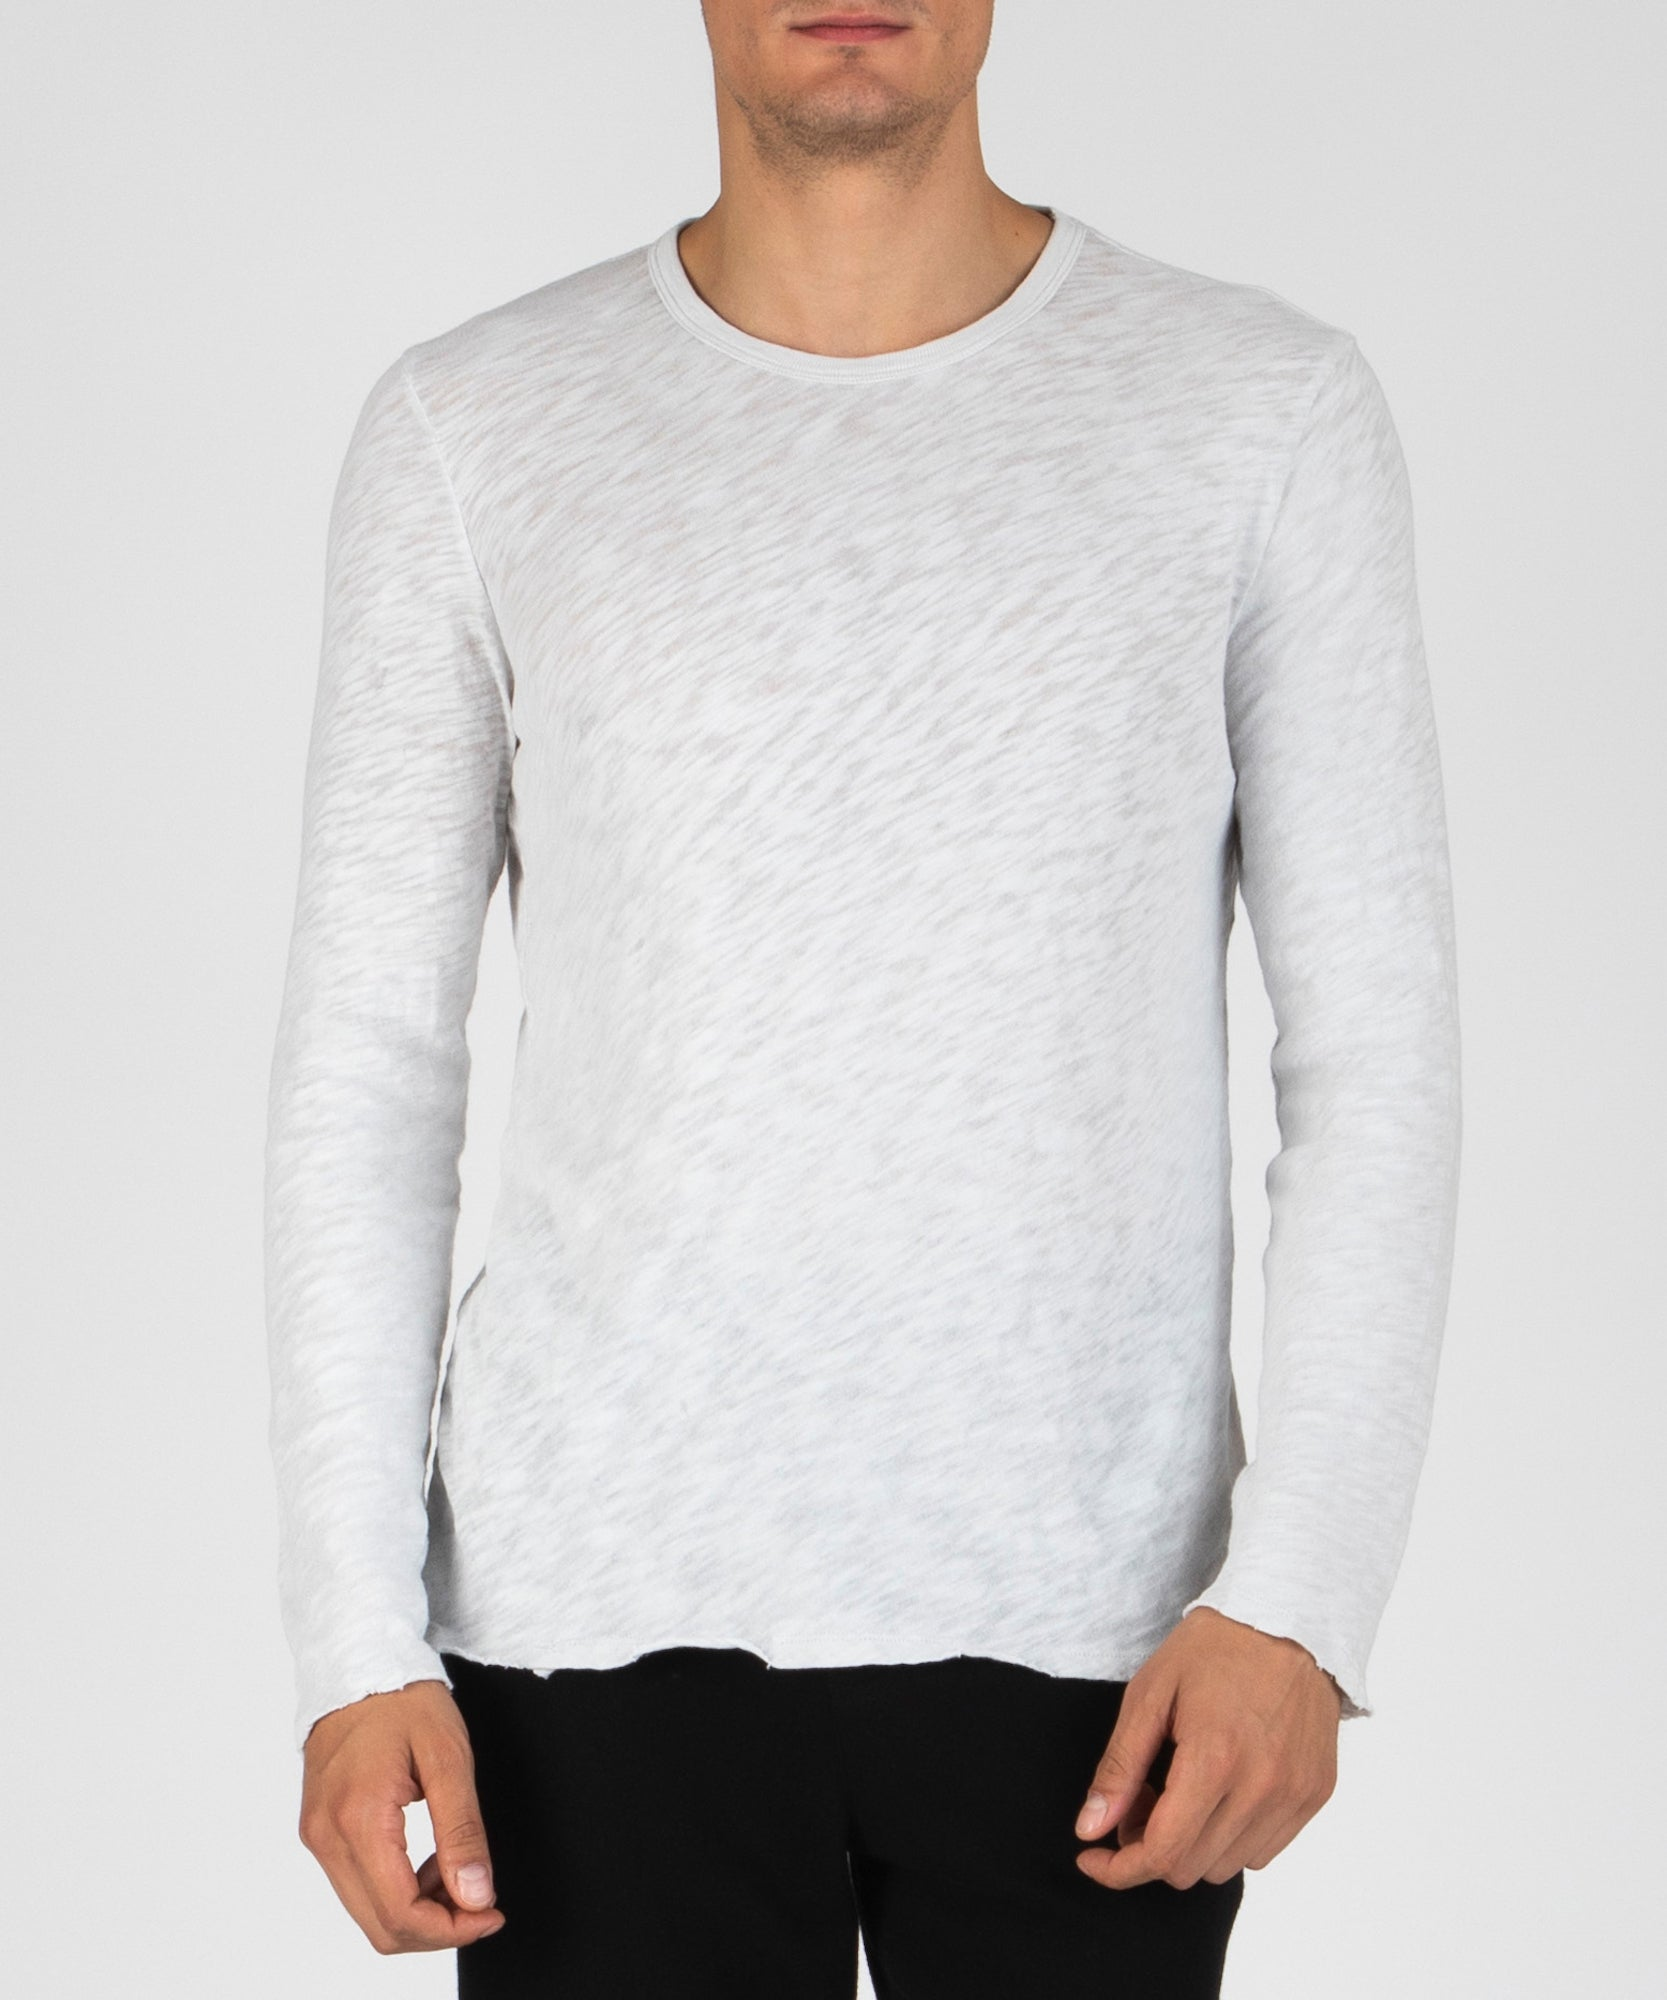 Smoke Pearl Slub Jersey Destroyed Wash Tee - Men's Cotton Long Sleeve Tee by ATM Anthony Thomas Melillo